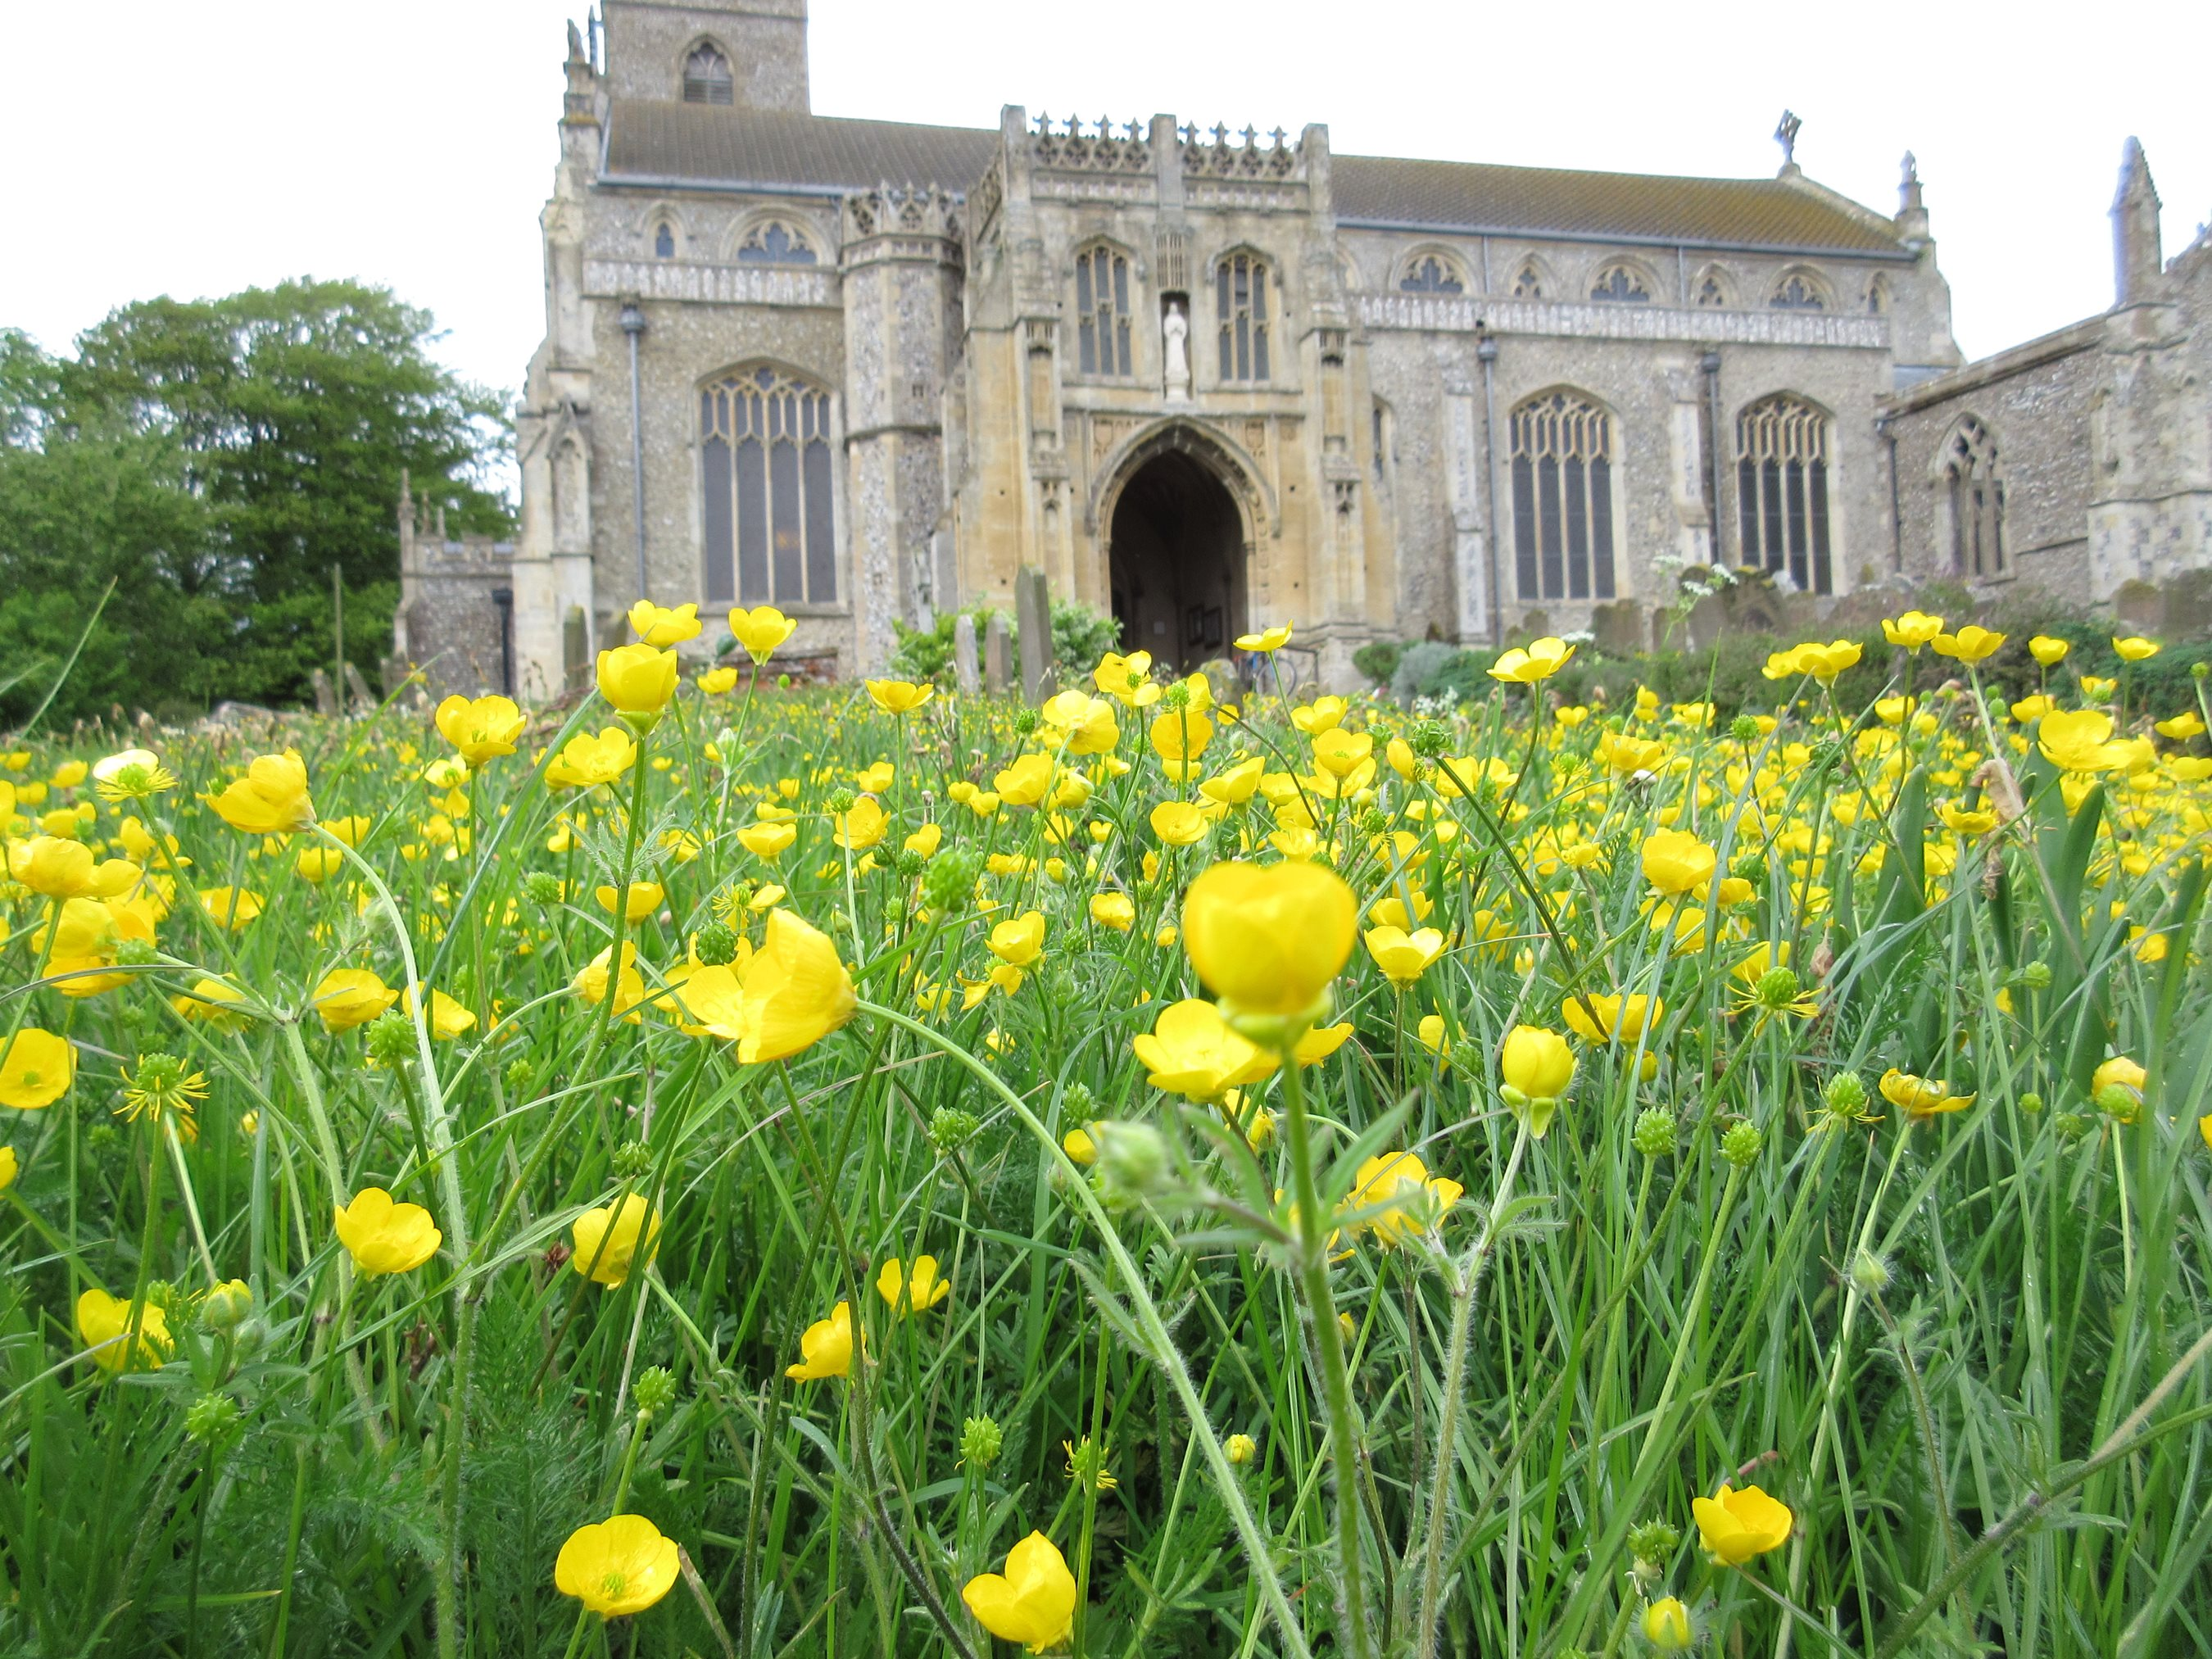 Bulbous buttercup, Cley churchyard, David North